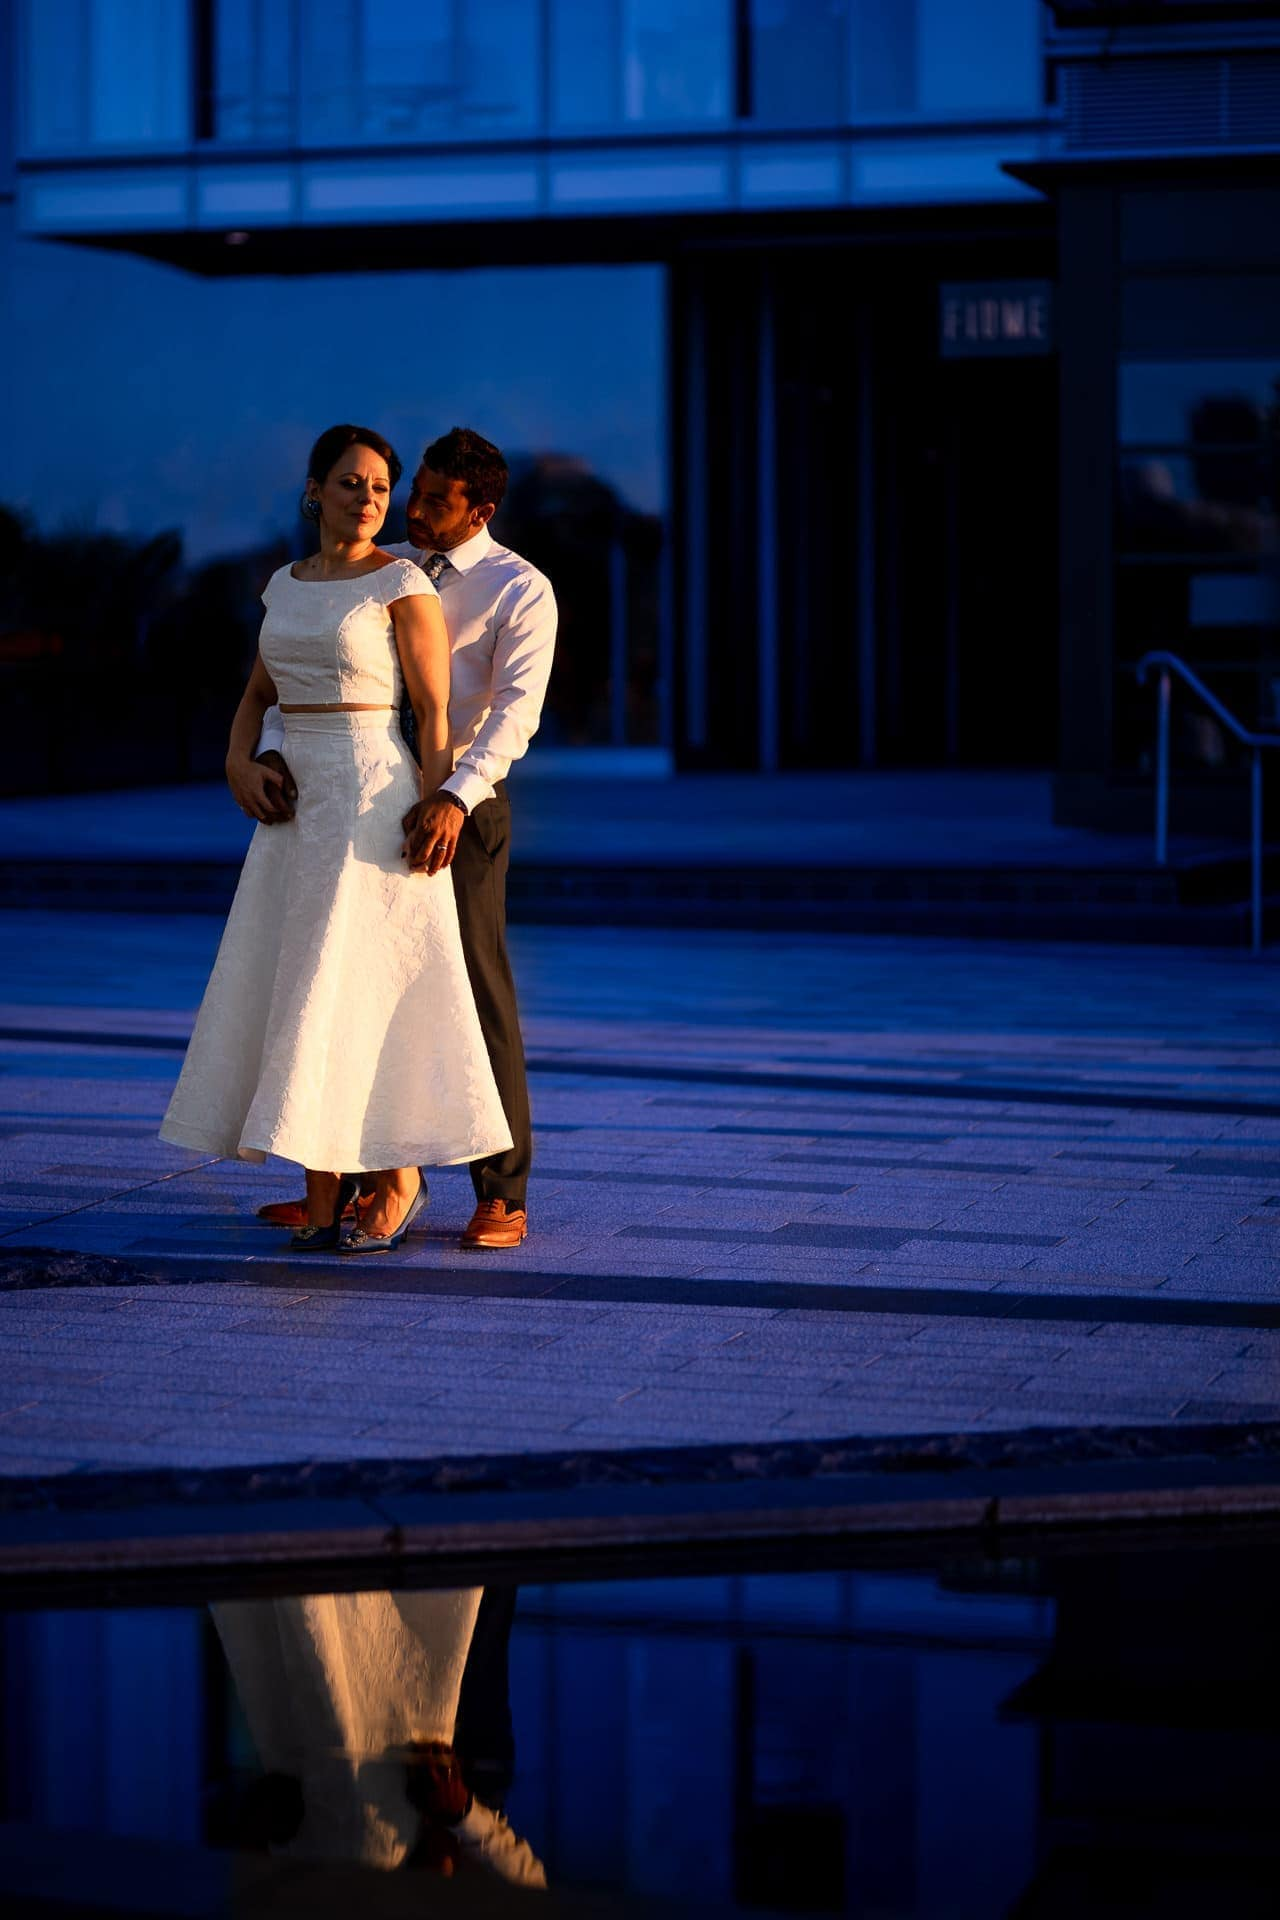 blue hour wedding photogs